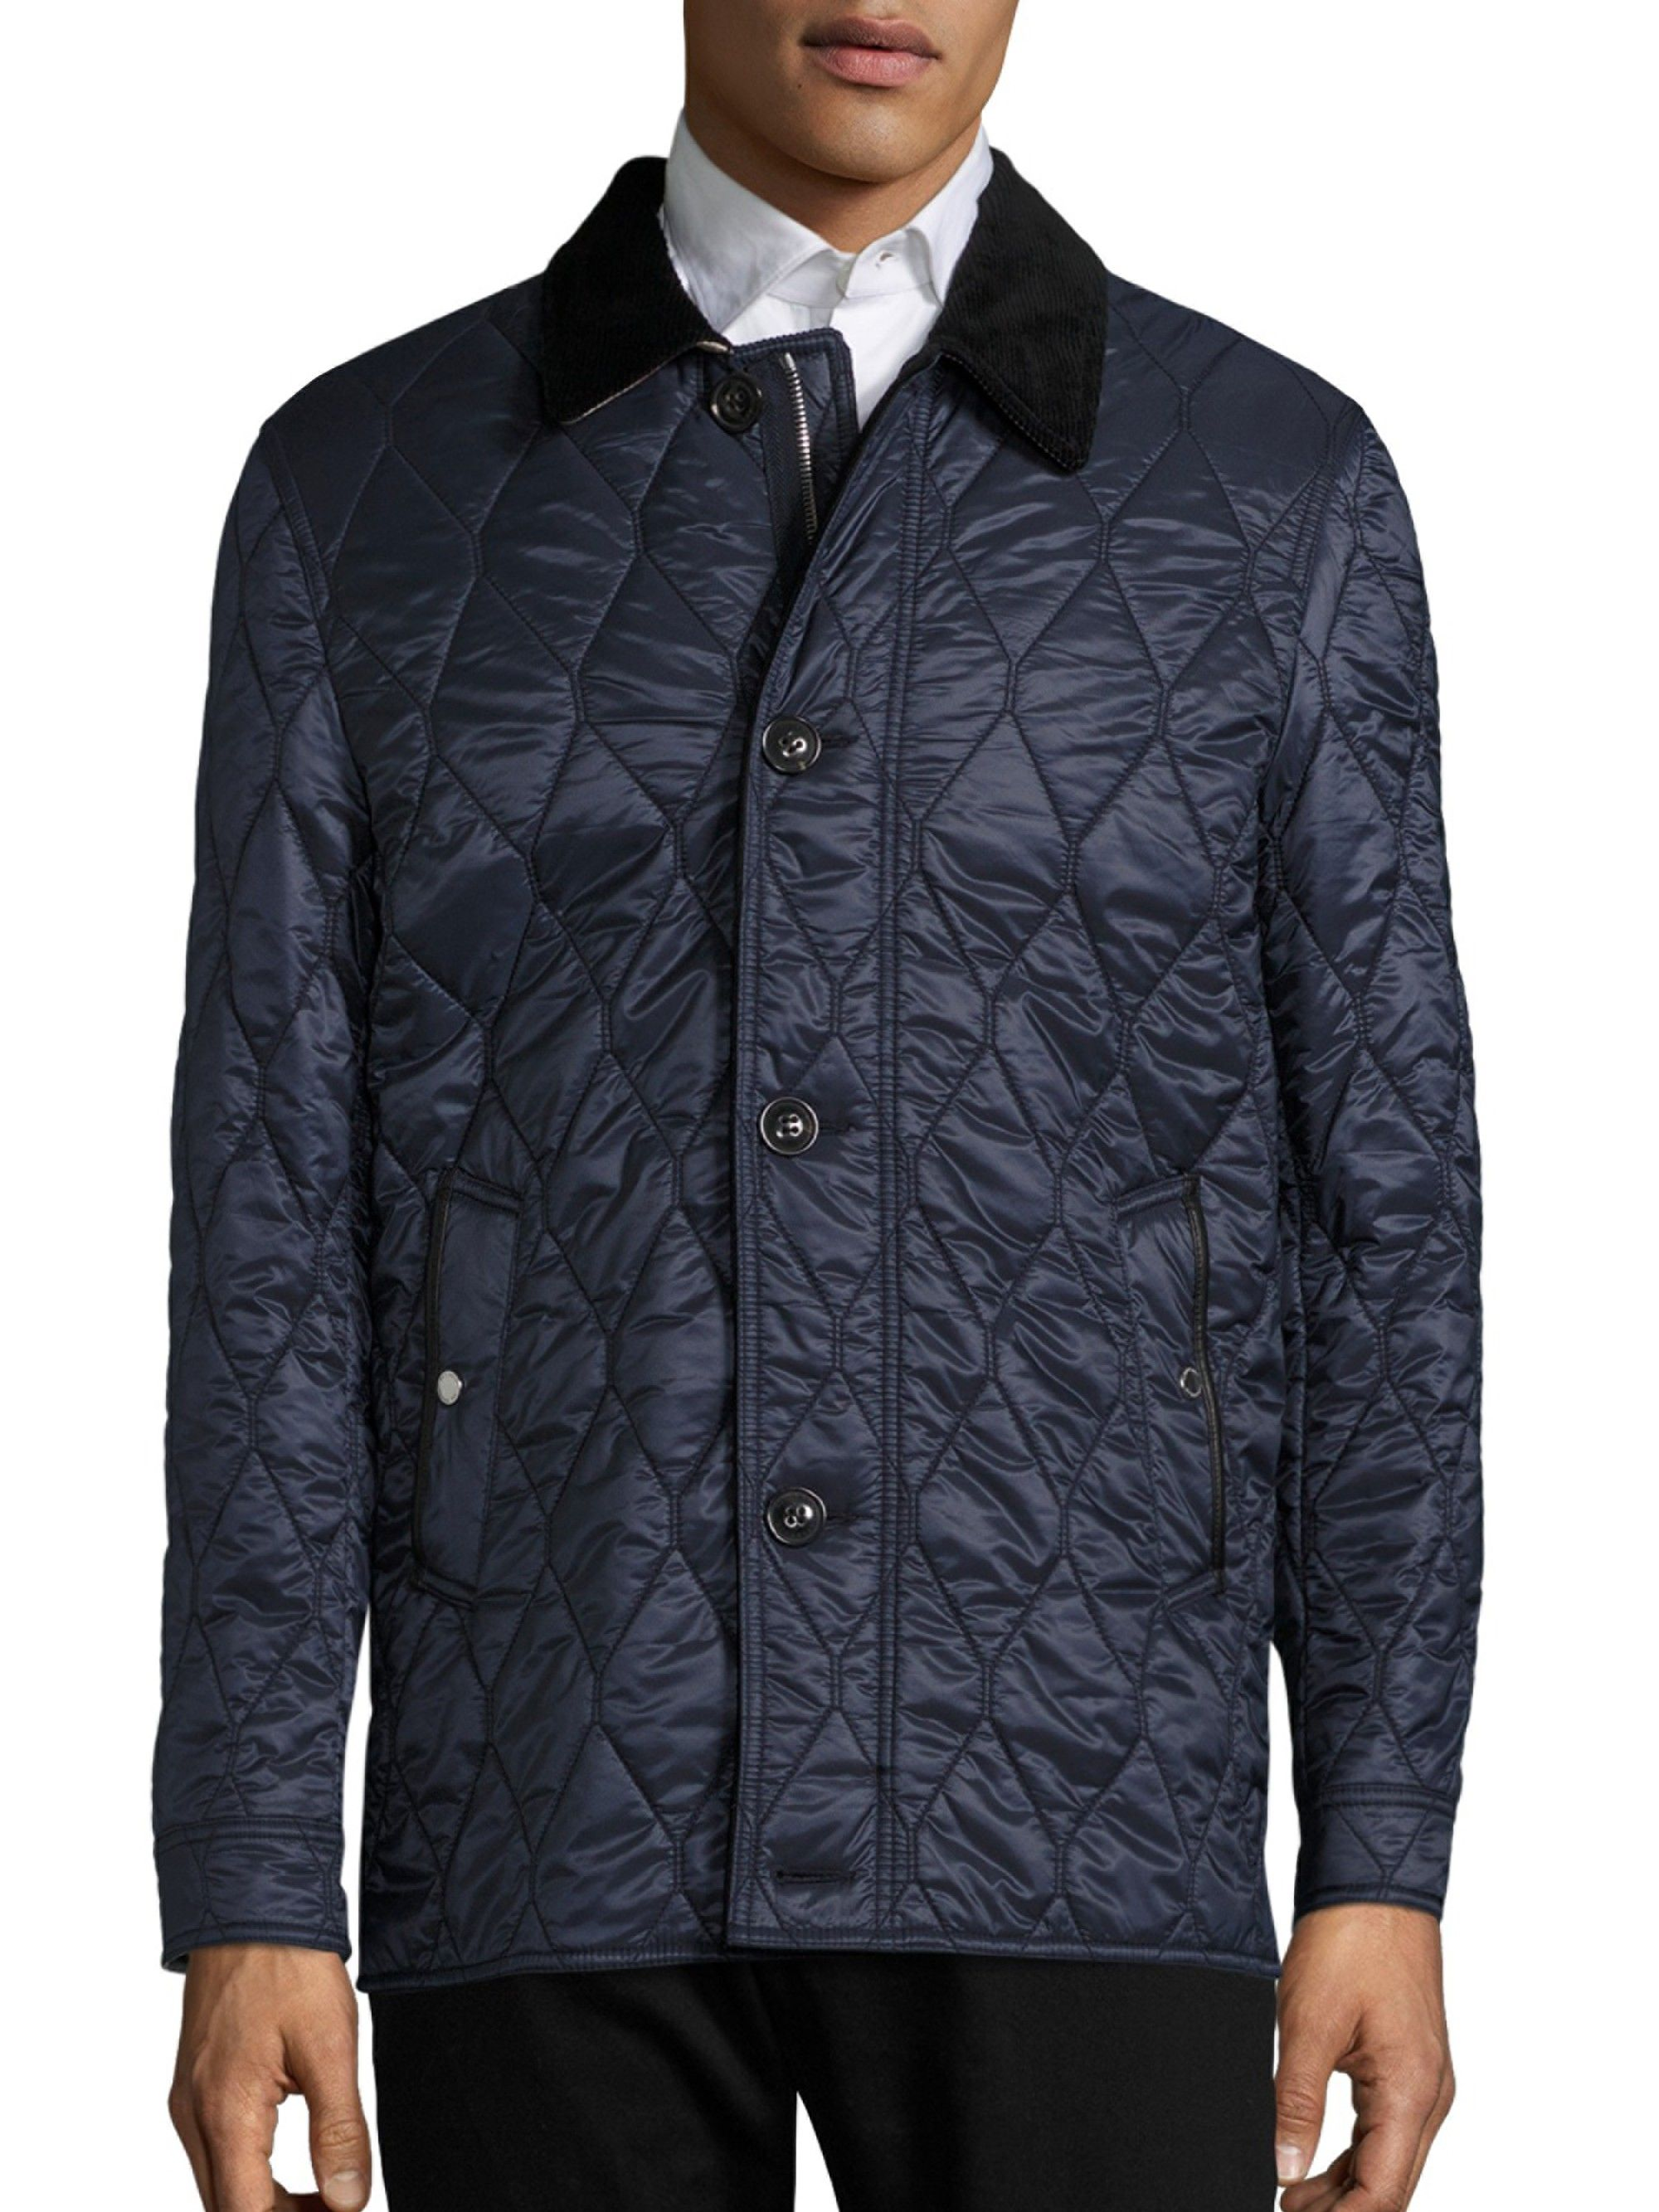 Burberry Gransworth Quilted Jacket In Navy Modesens Quilted Jacket Jackets Burberry